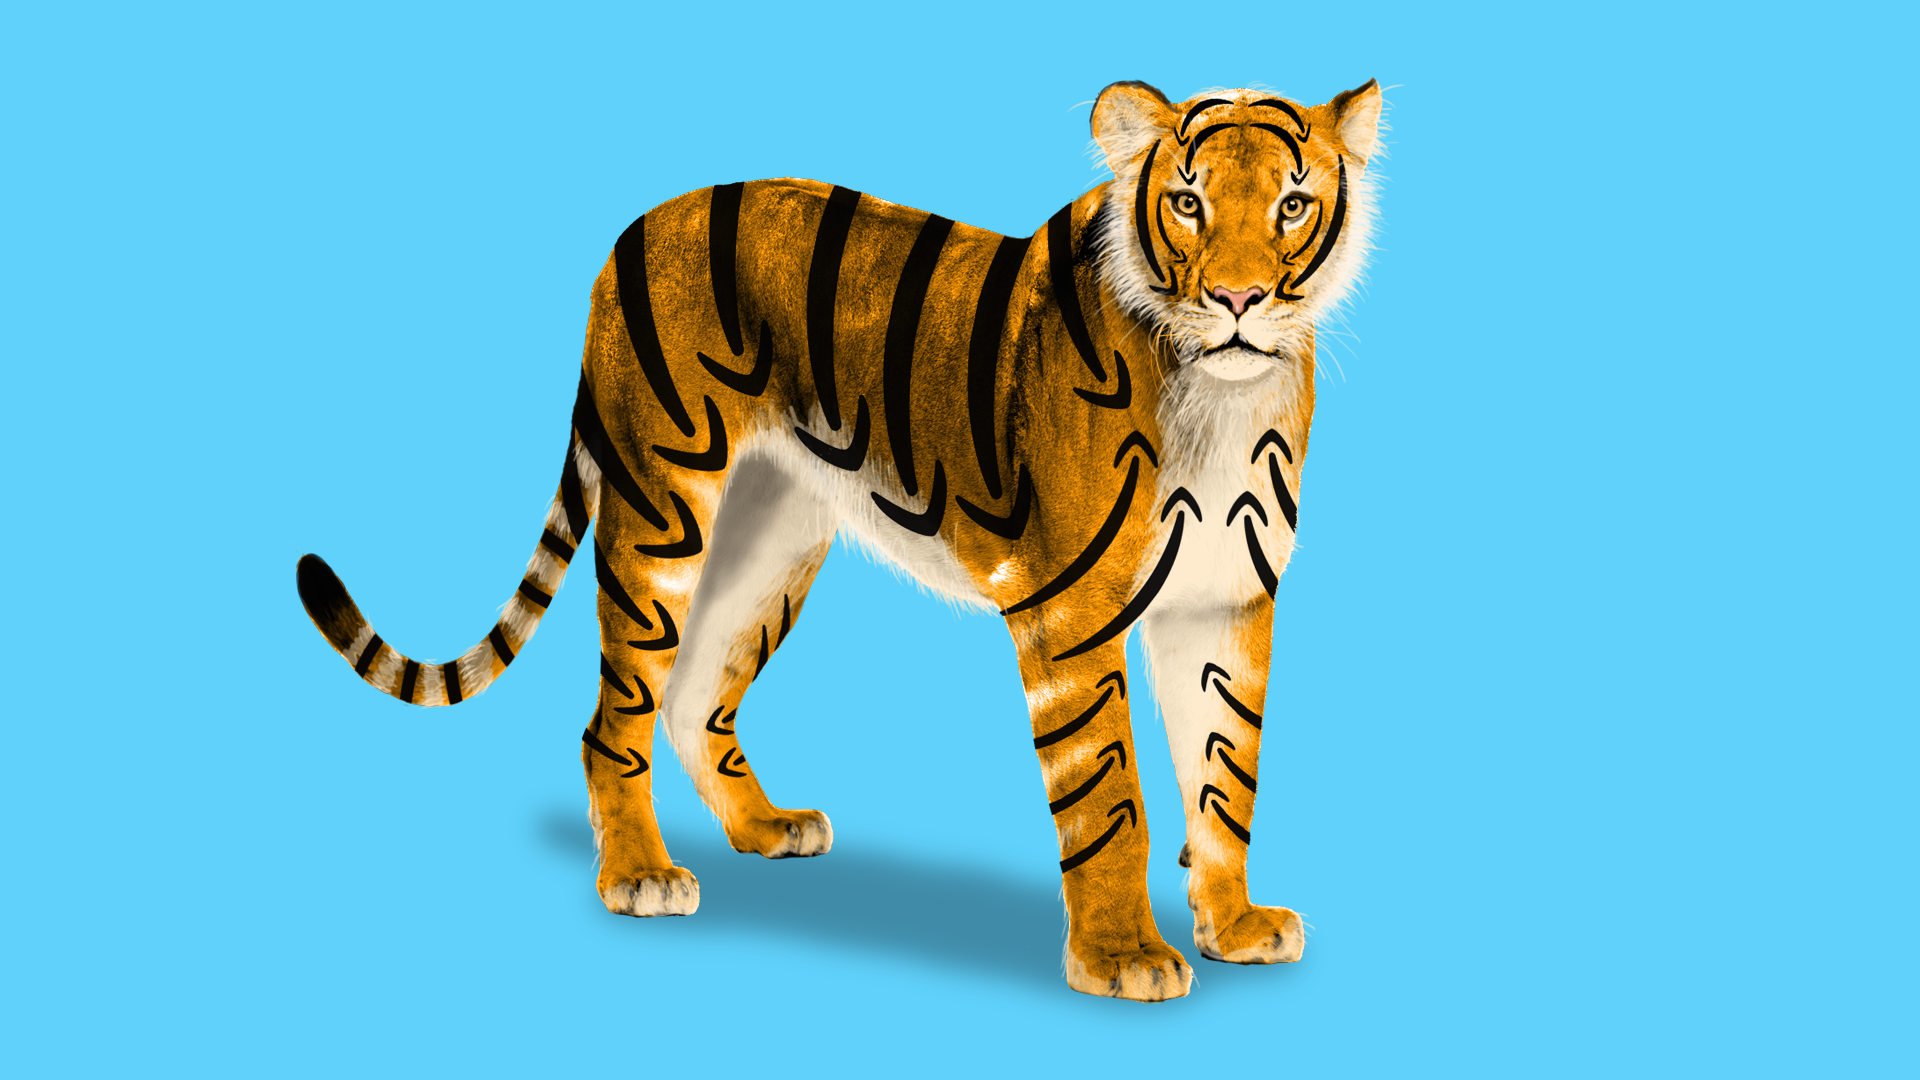 A tiger with Amazon arrows on its coat